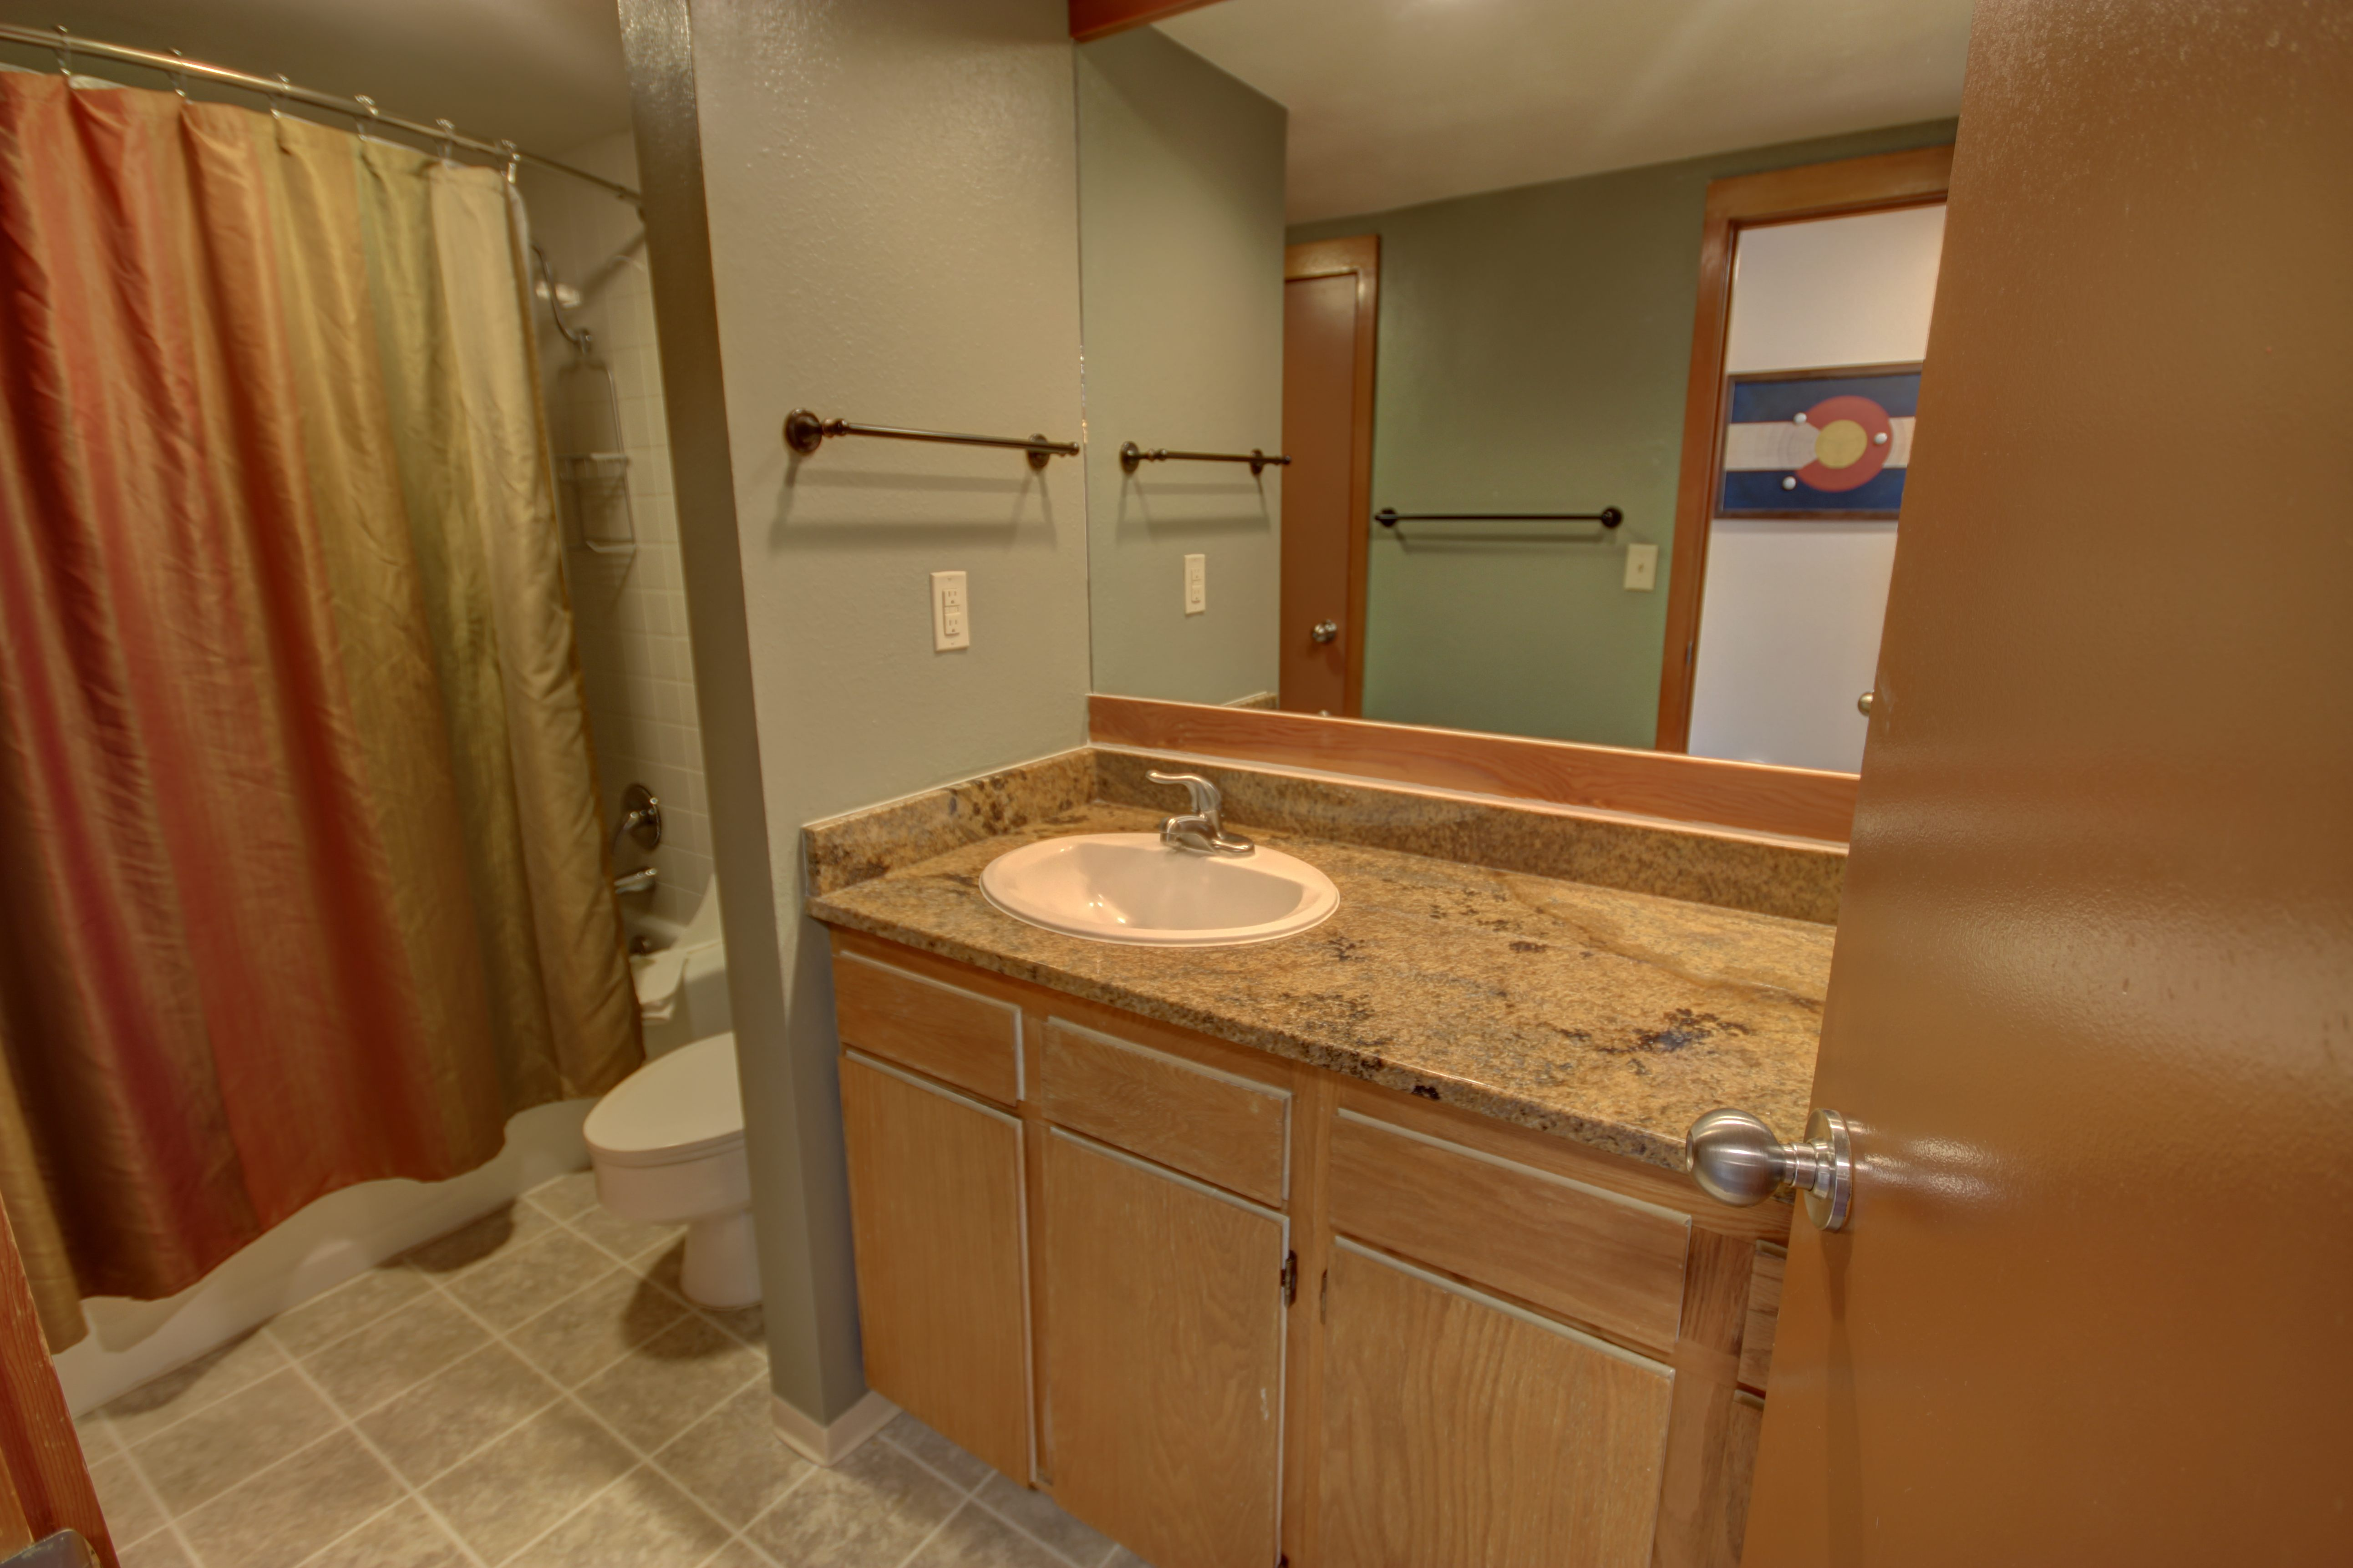 Bathroom with granite counter top